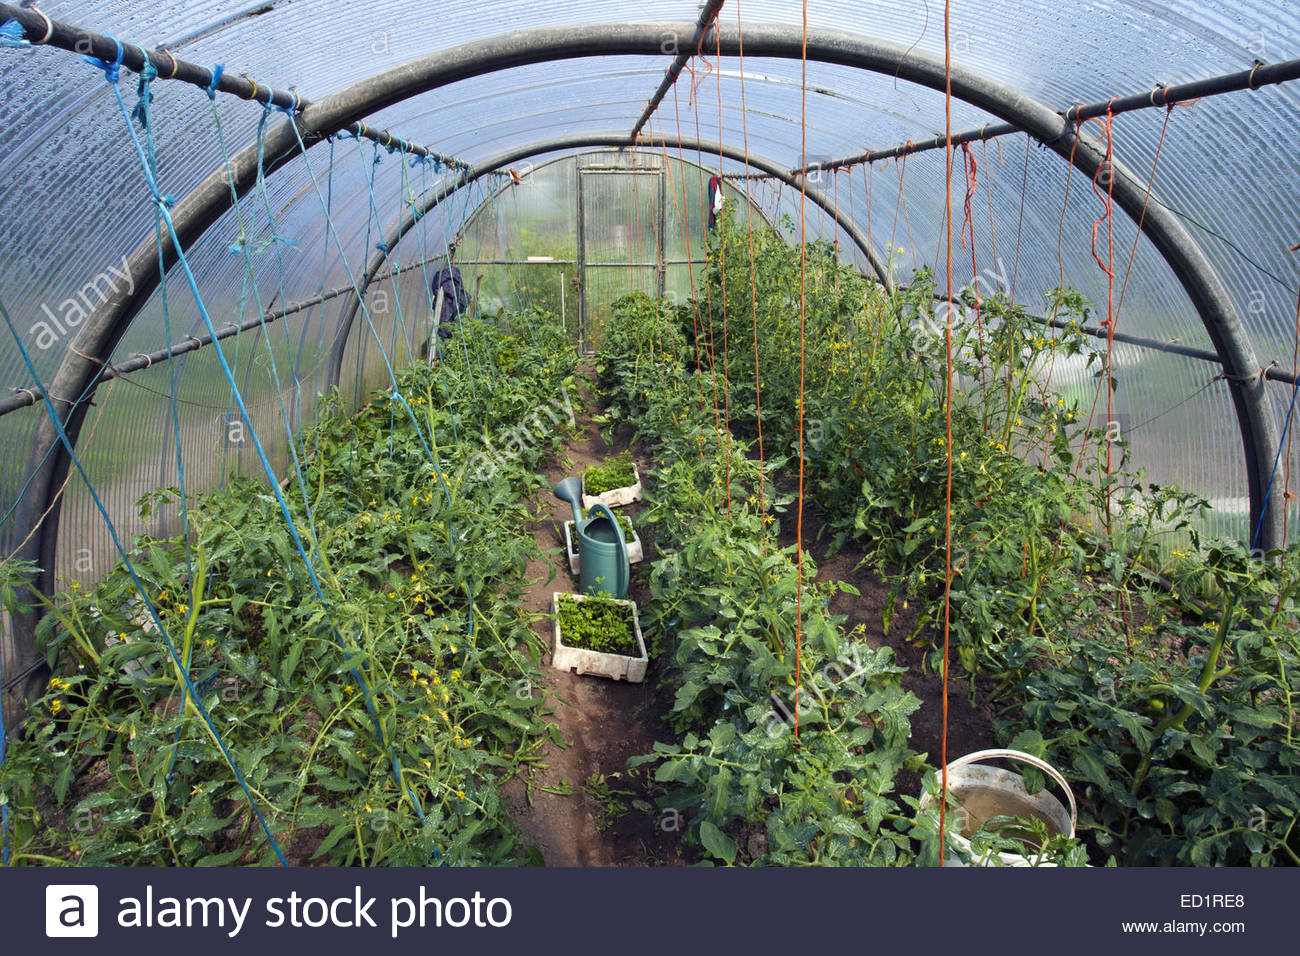 Kitchen Vegetable Garden Tomato Plants Solanum Lycopersicum Growing In Plastic Tunnel